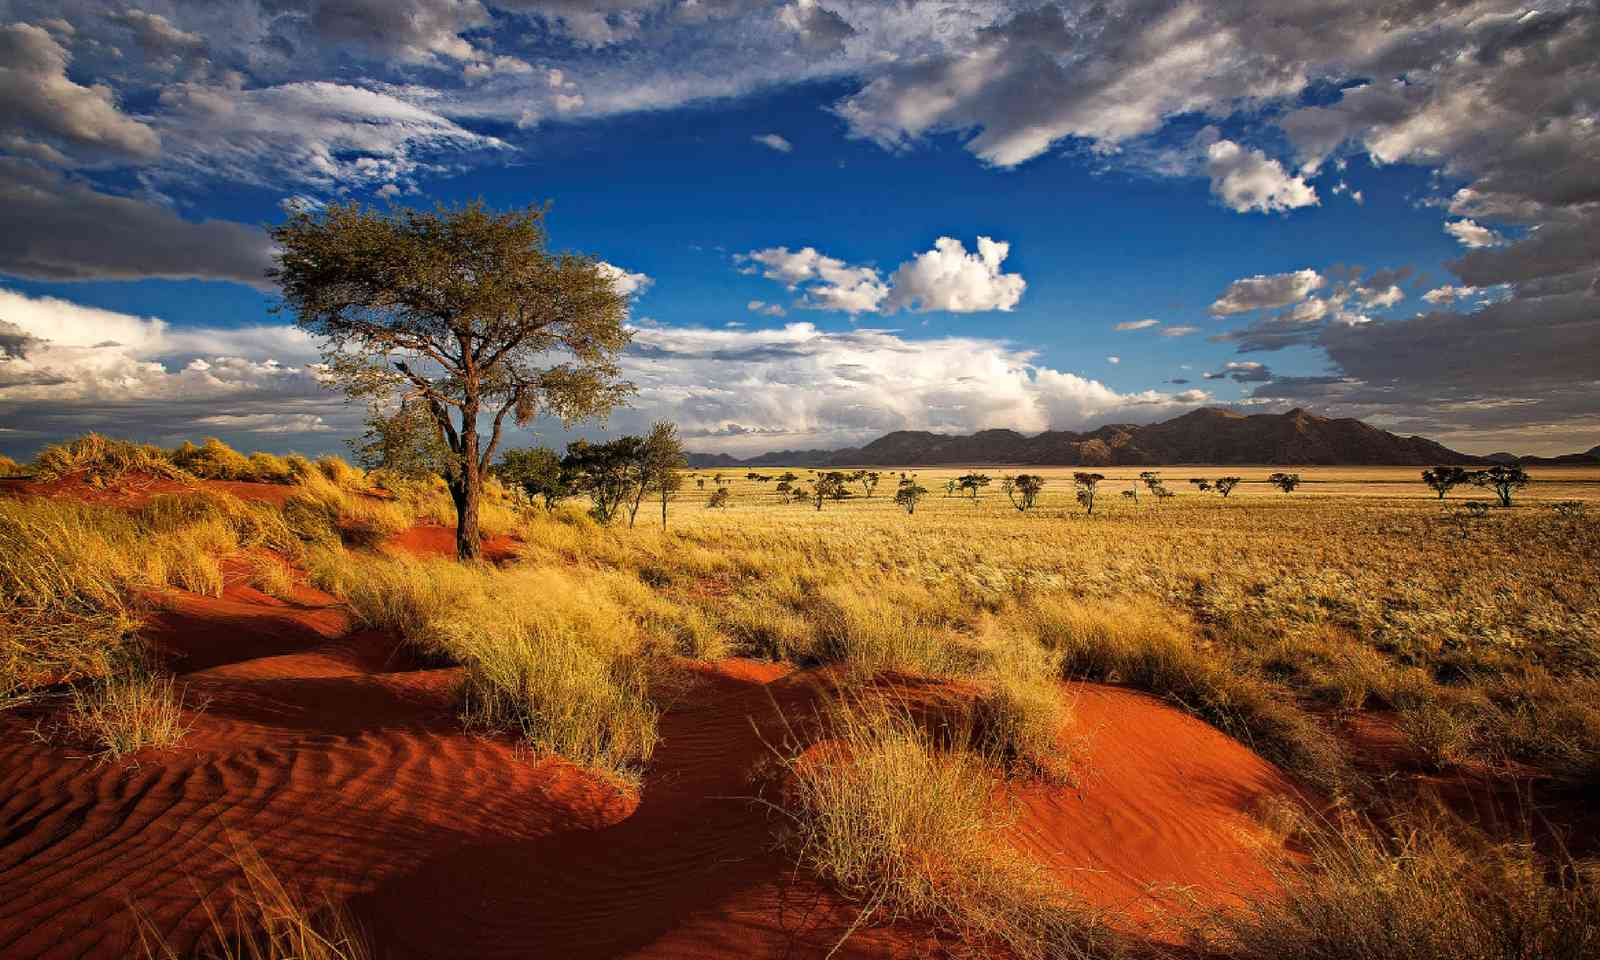 Nature reserve, Namibia (Shutterstock)